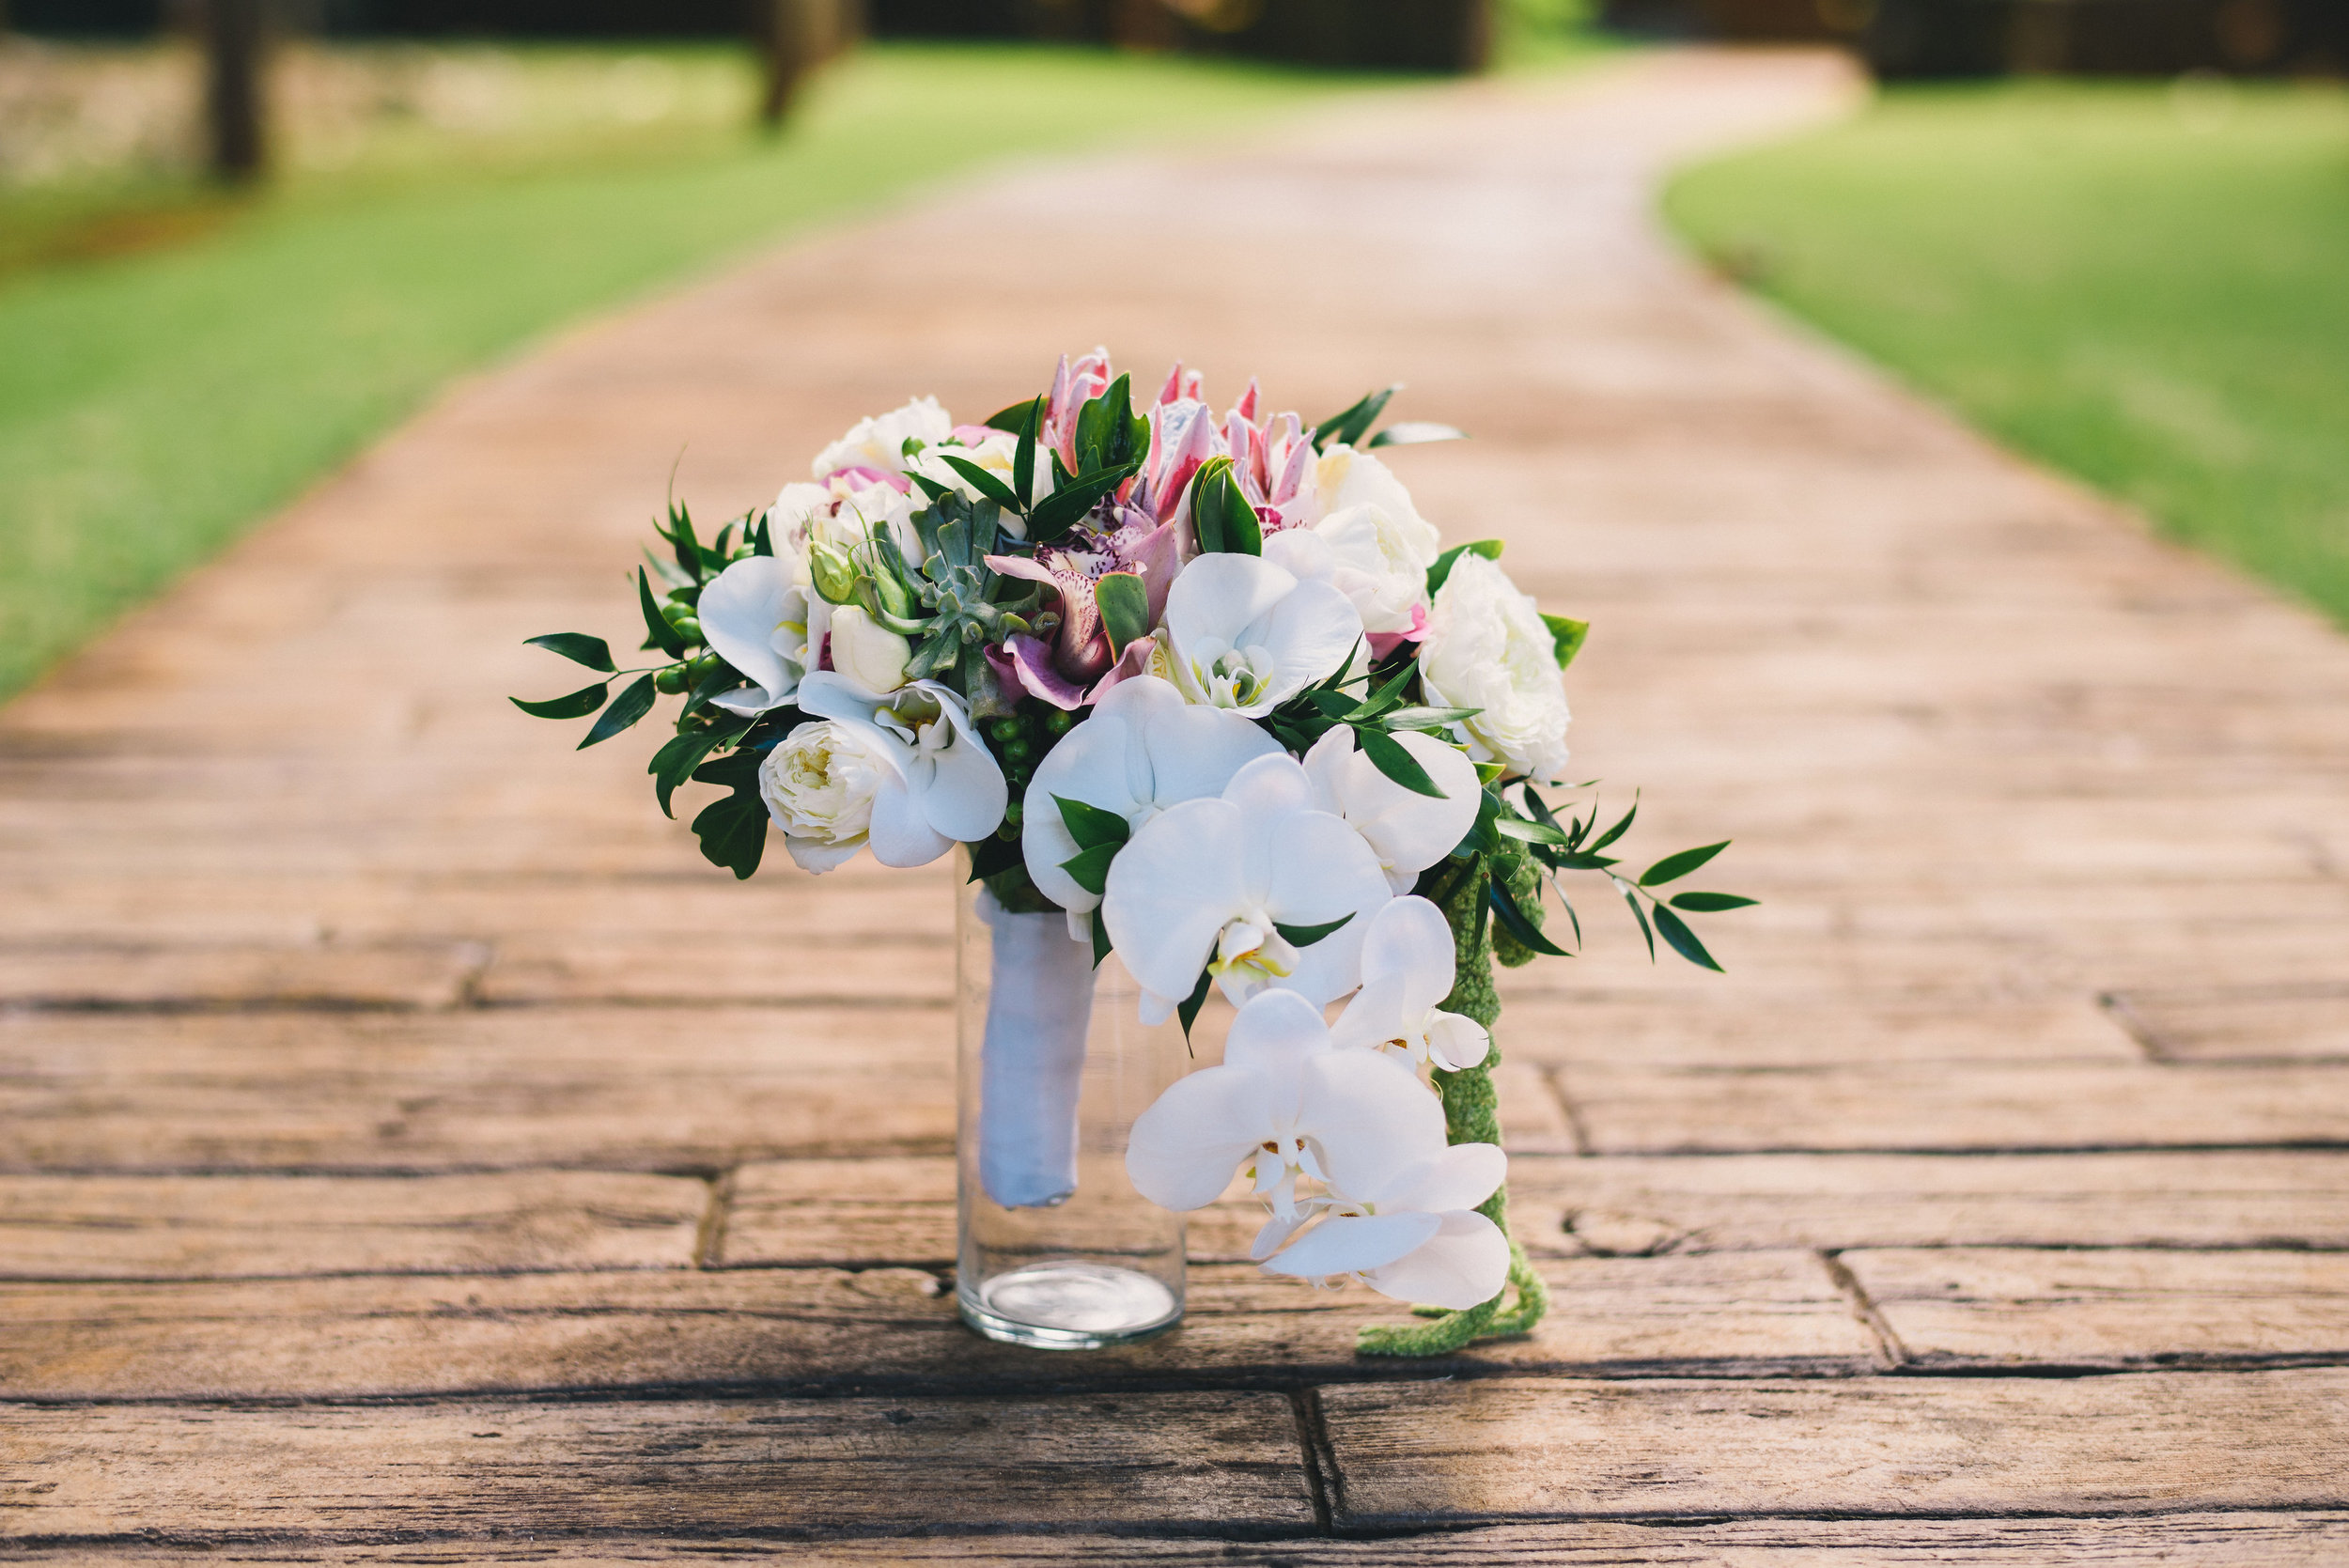 Elegant Bridal Bouquet Made With White Orchids and a King Protea Flower